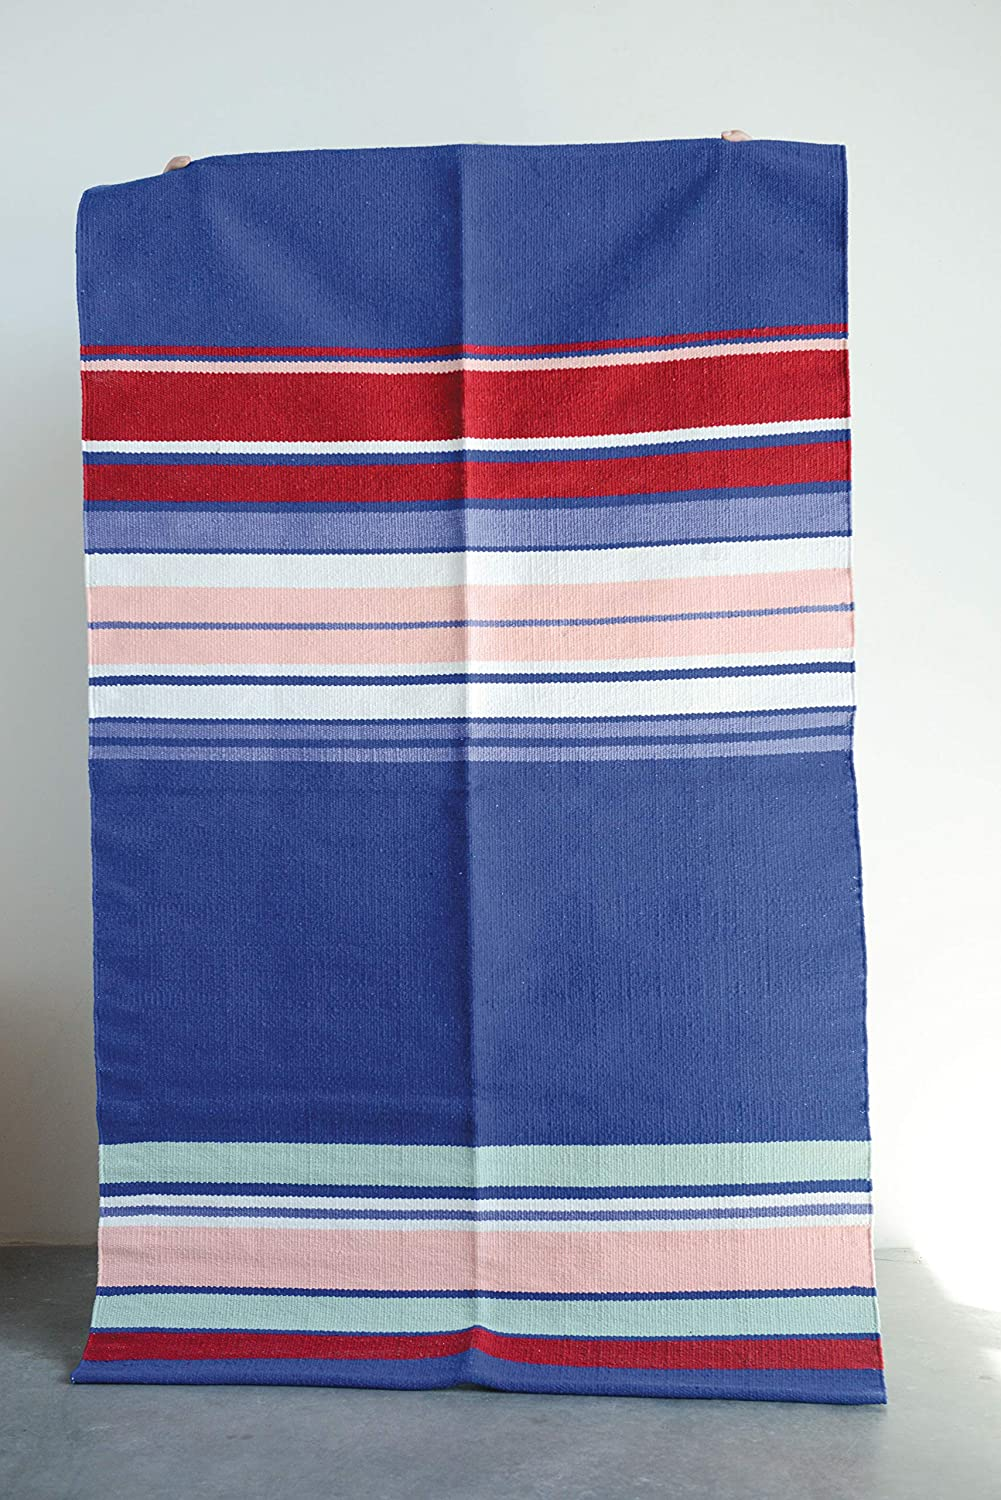 Pink Green /& White Stripes Throw, Creative Co-op 36 x 60 Blue Rug with Red